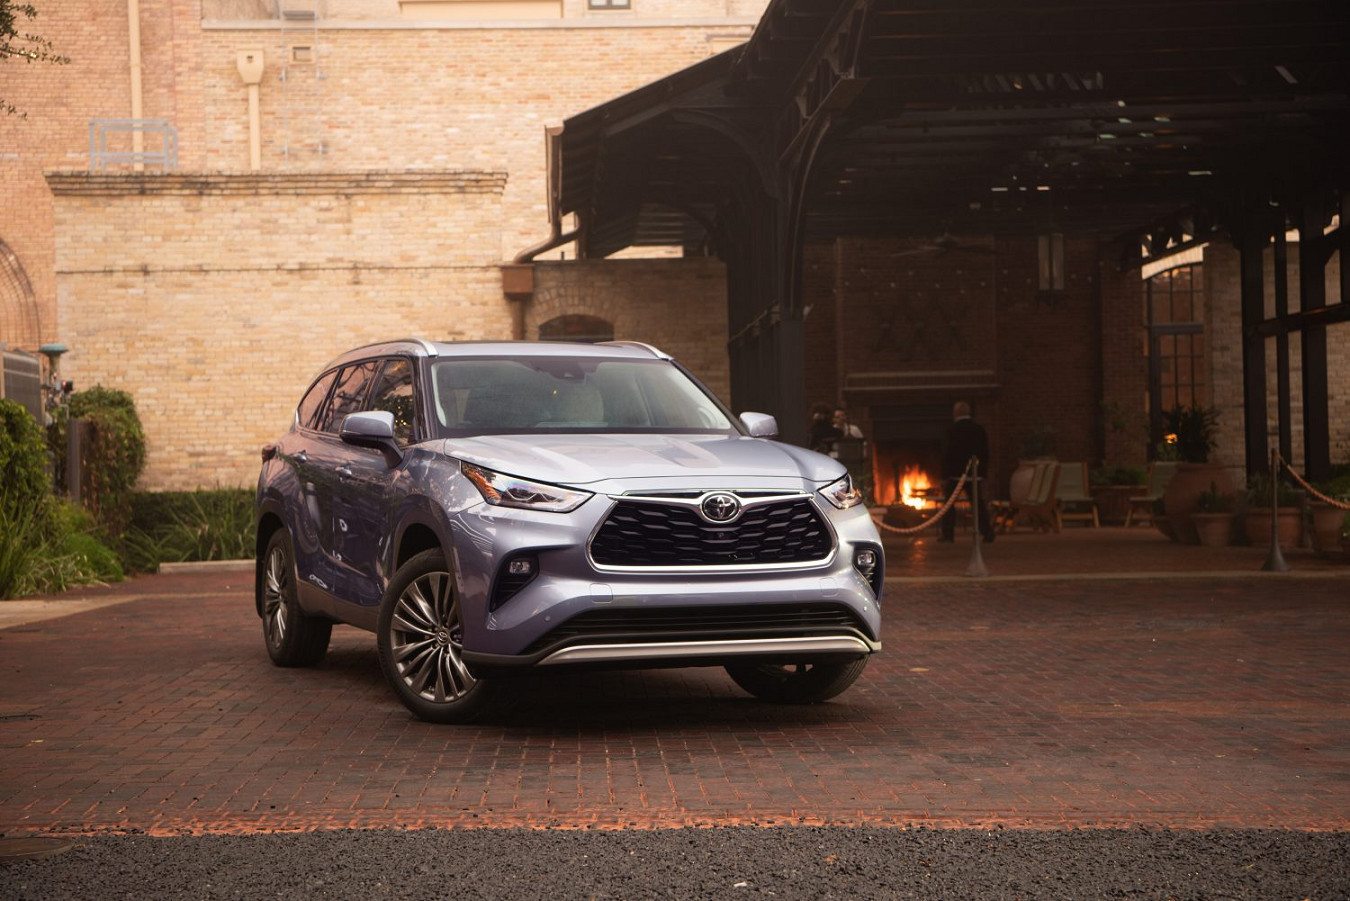 2020 Toyota Highlander Lease near Lee's Summit, MO, 66086